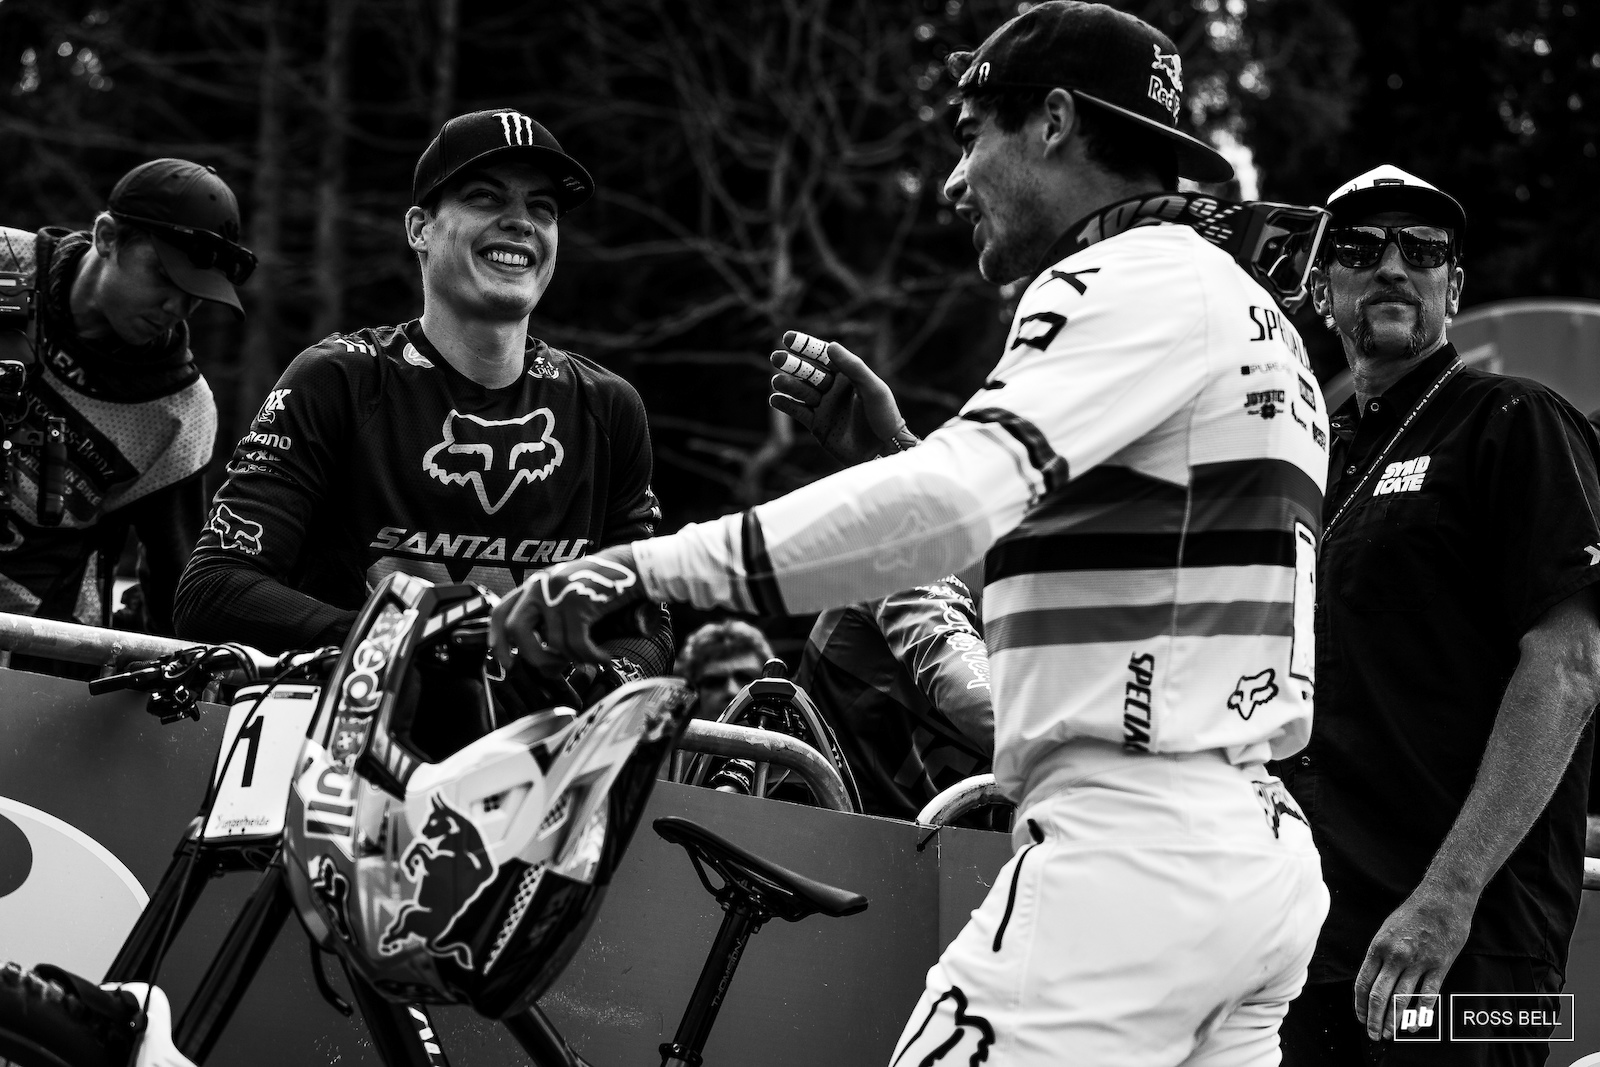 Loic Bruni and Loris Vergier share the stories from their race runs.